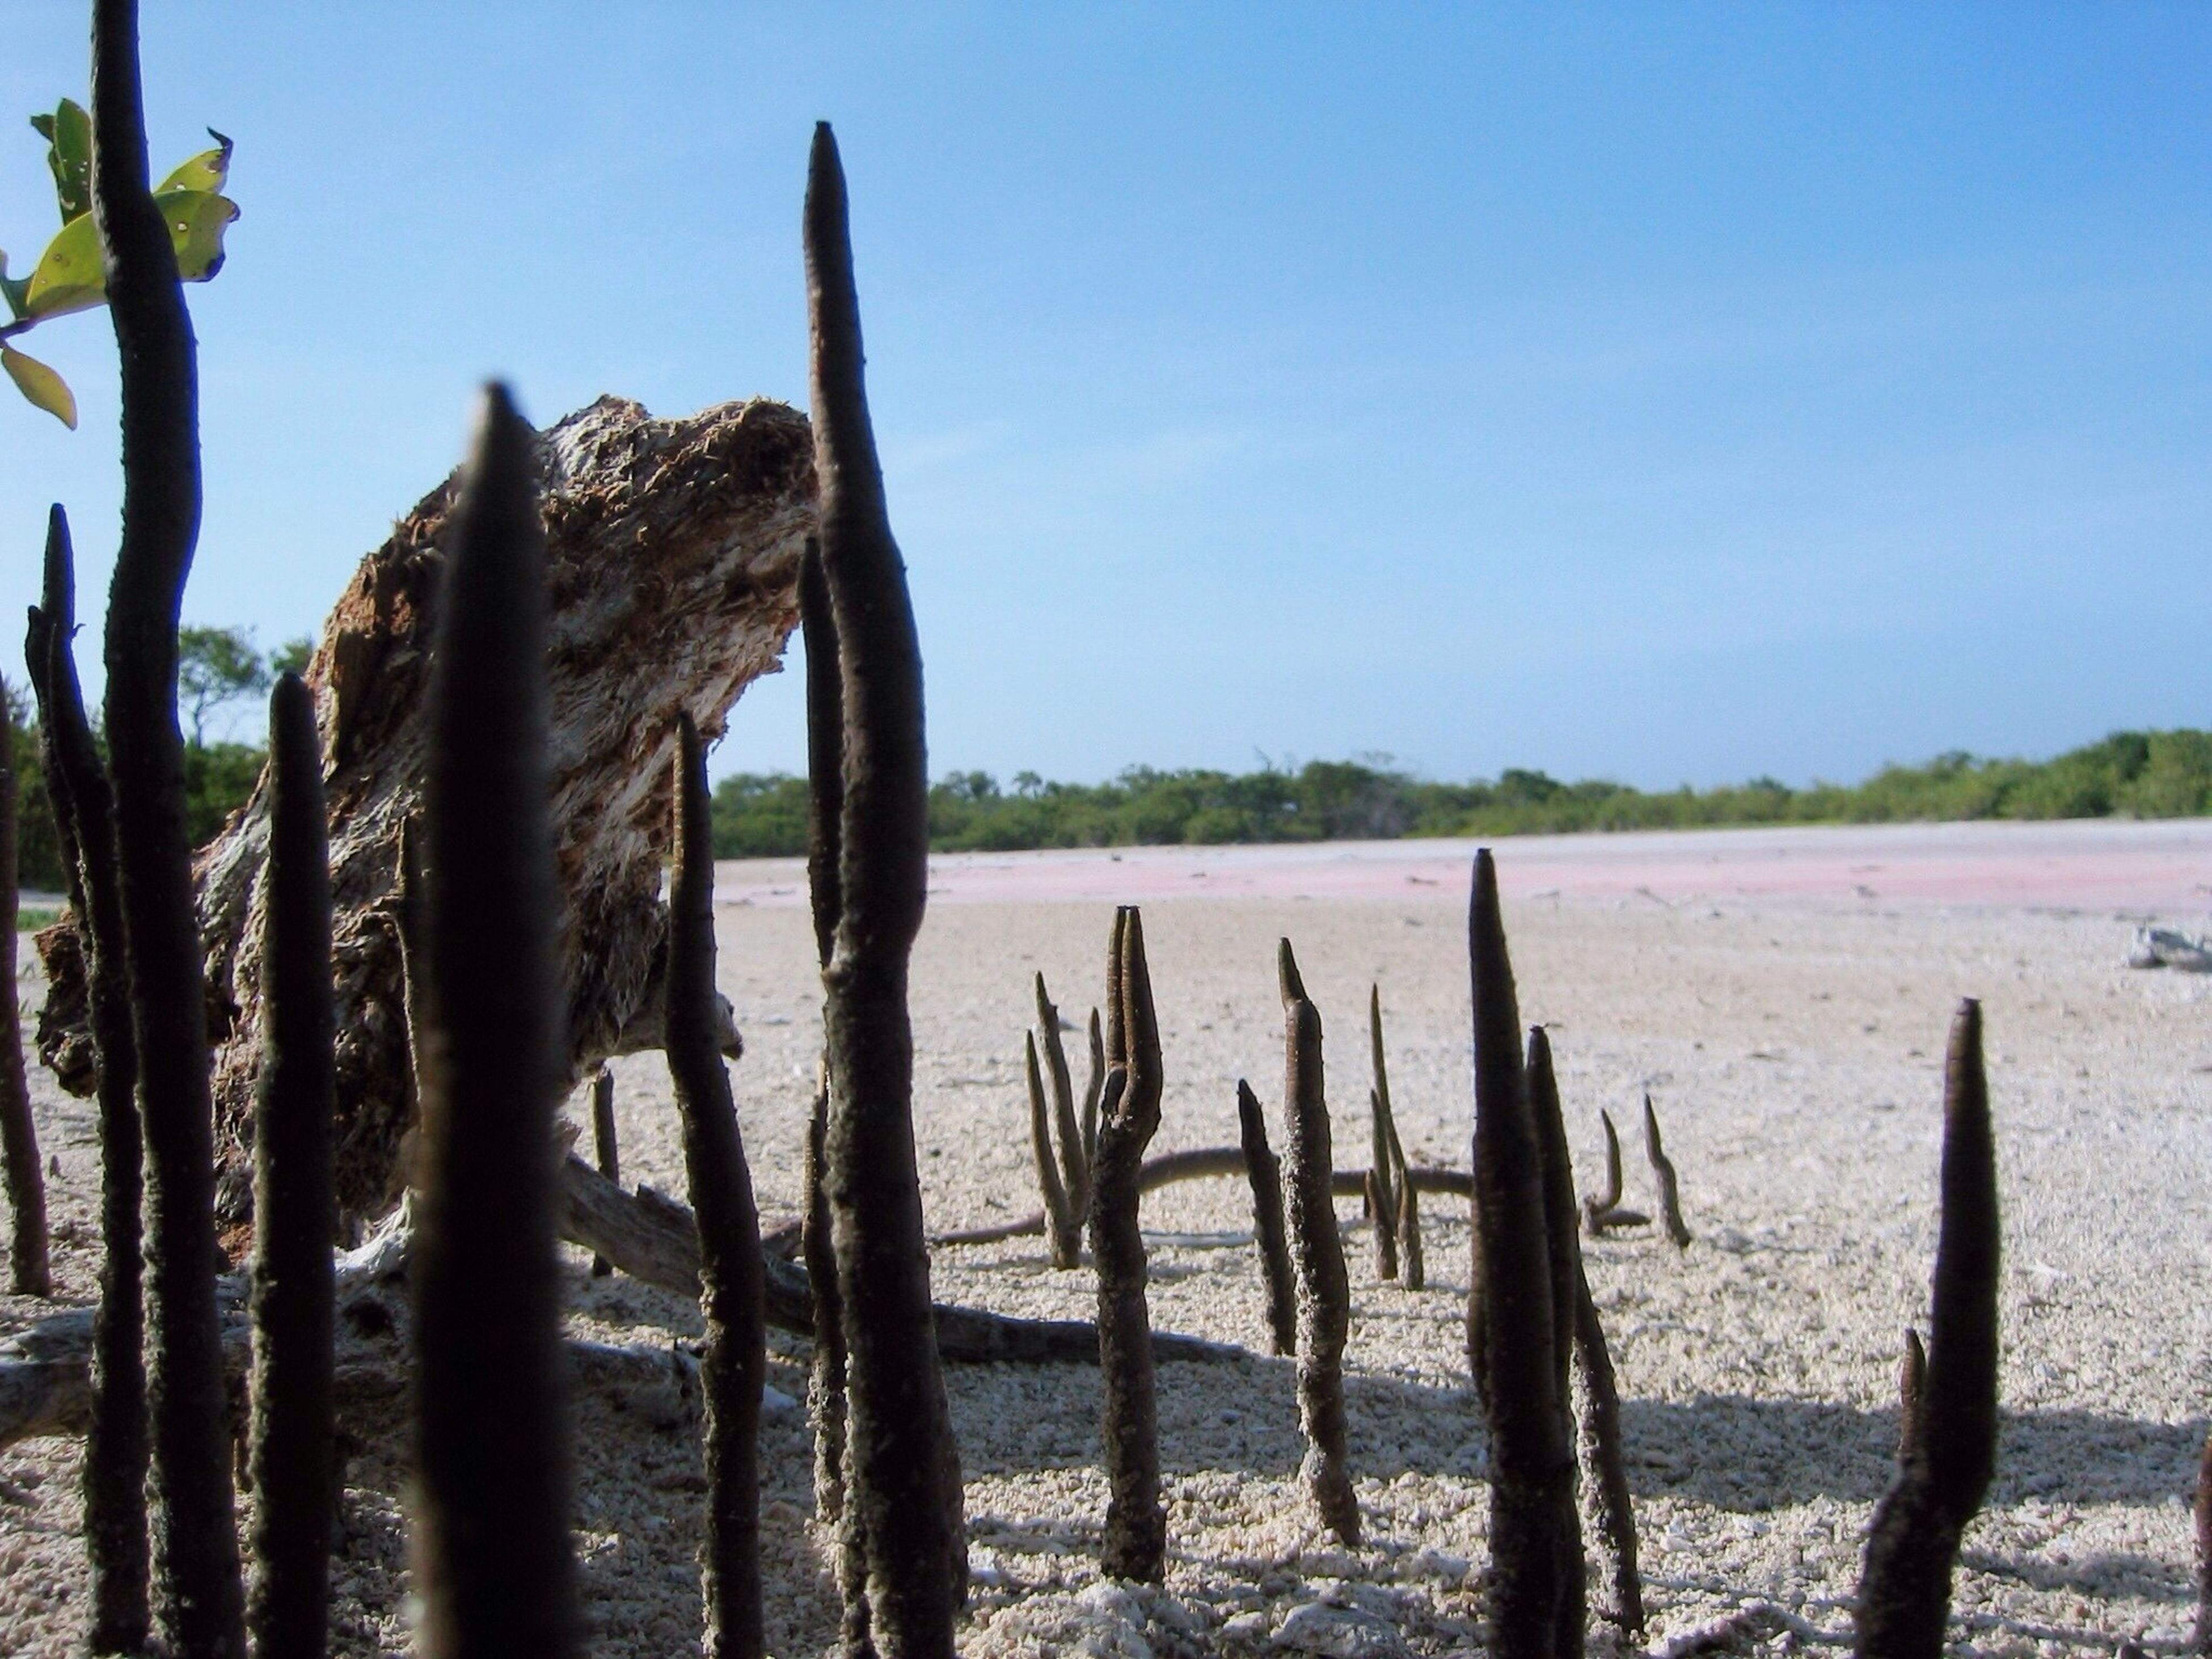 tranquility, water, tranquil scene, nature, beach, sea, sky, scenics, clear sky, beauty in nature, shore, wooden post, wood - material, sand, tree trunk, dead plant, blue, day, tree, non-urban scene